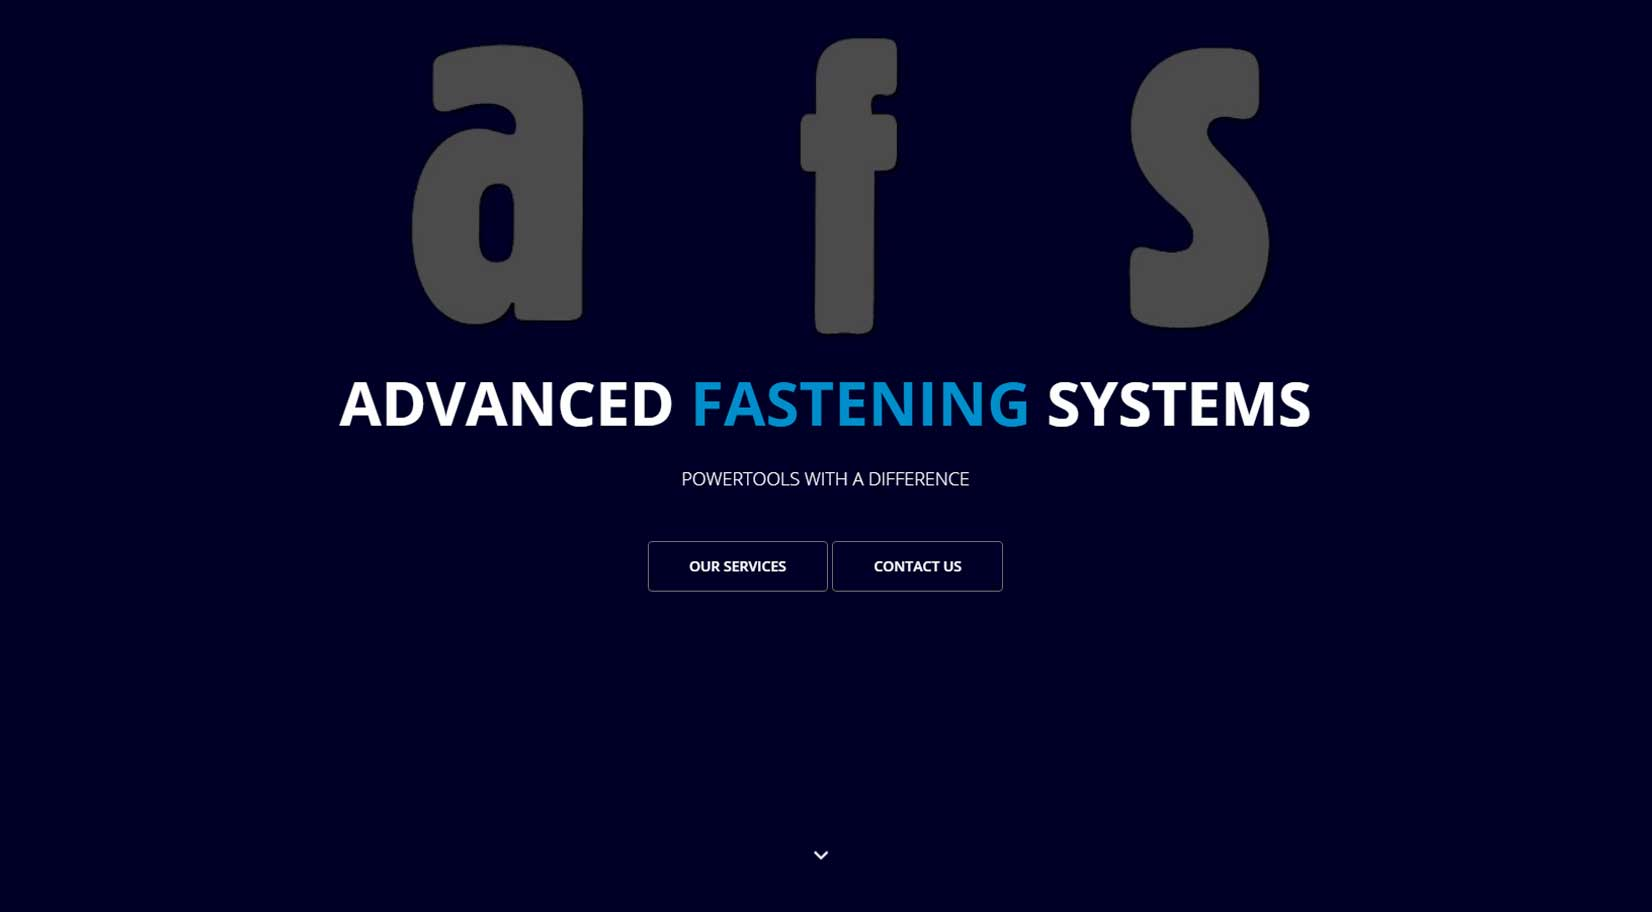 ADVANCED FASTENING SYSTEMS